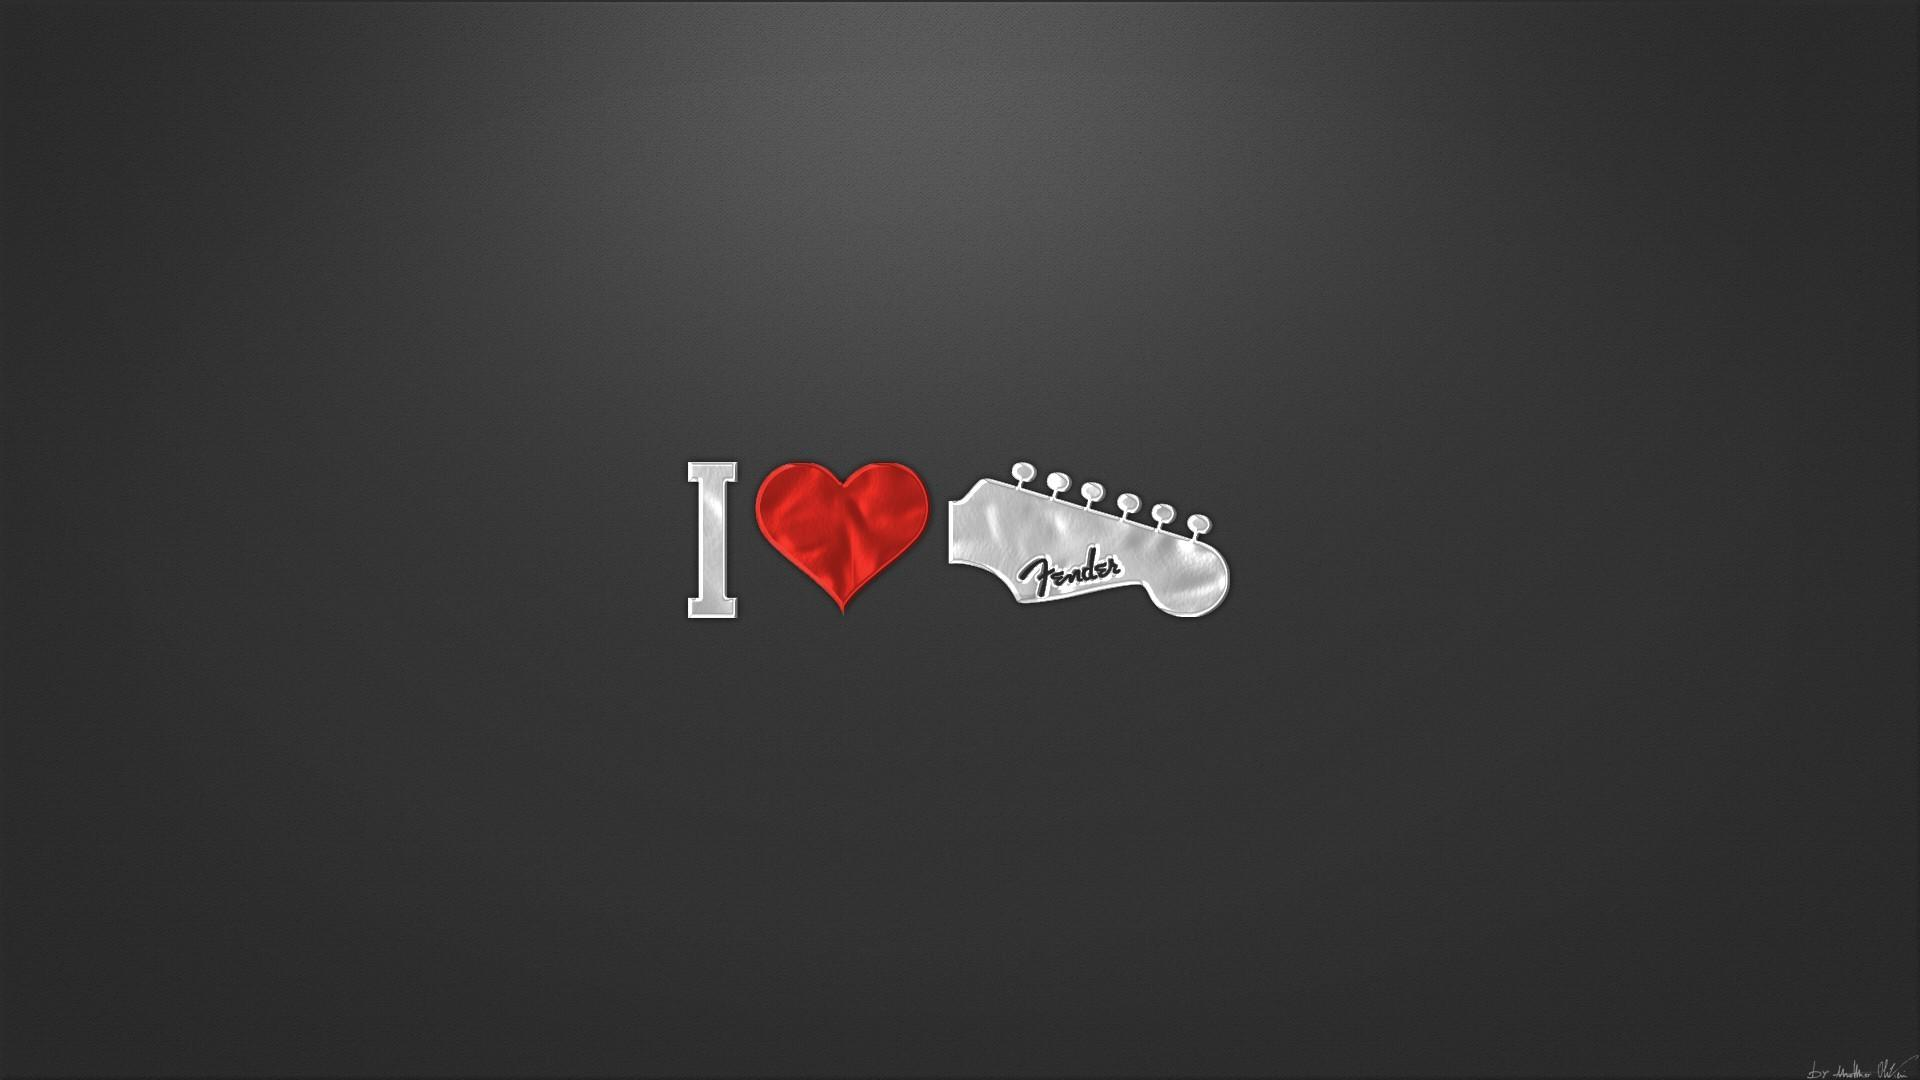 Fender Wallpaper High Resolution Pictures 1920x1080